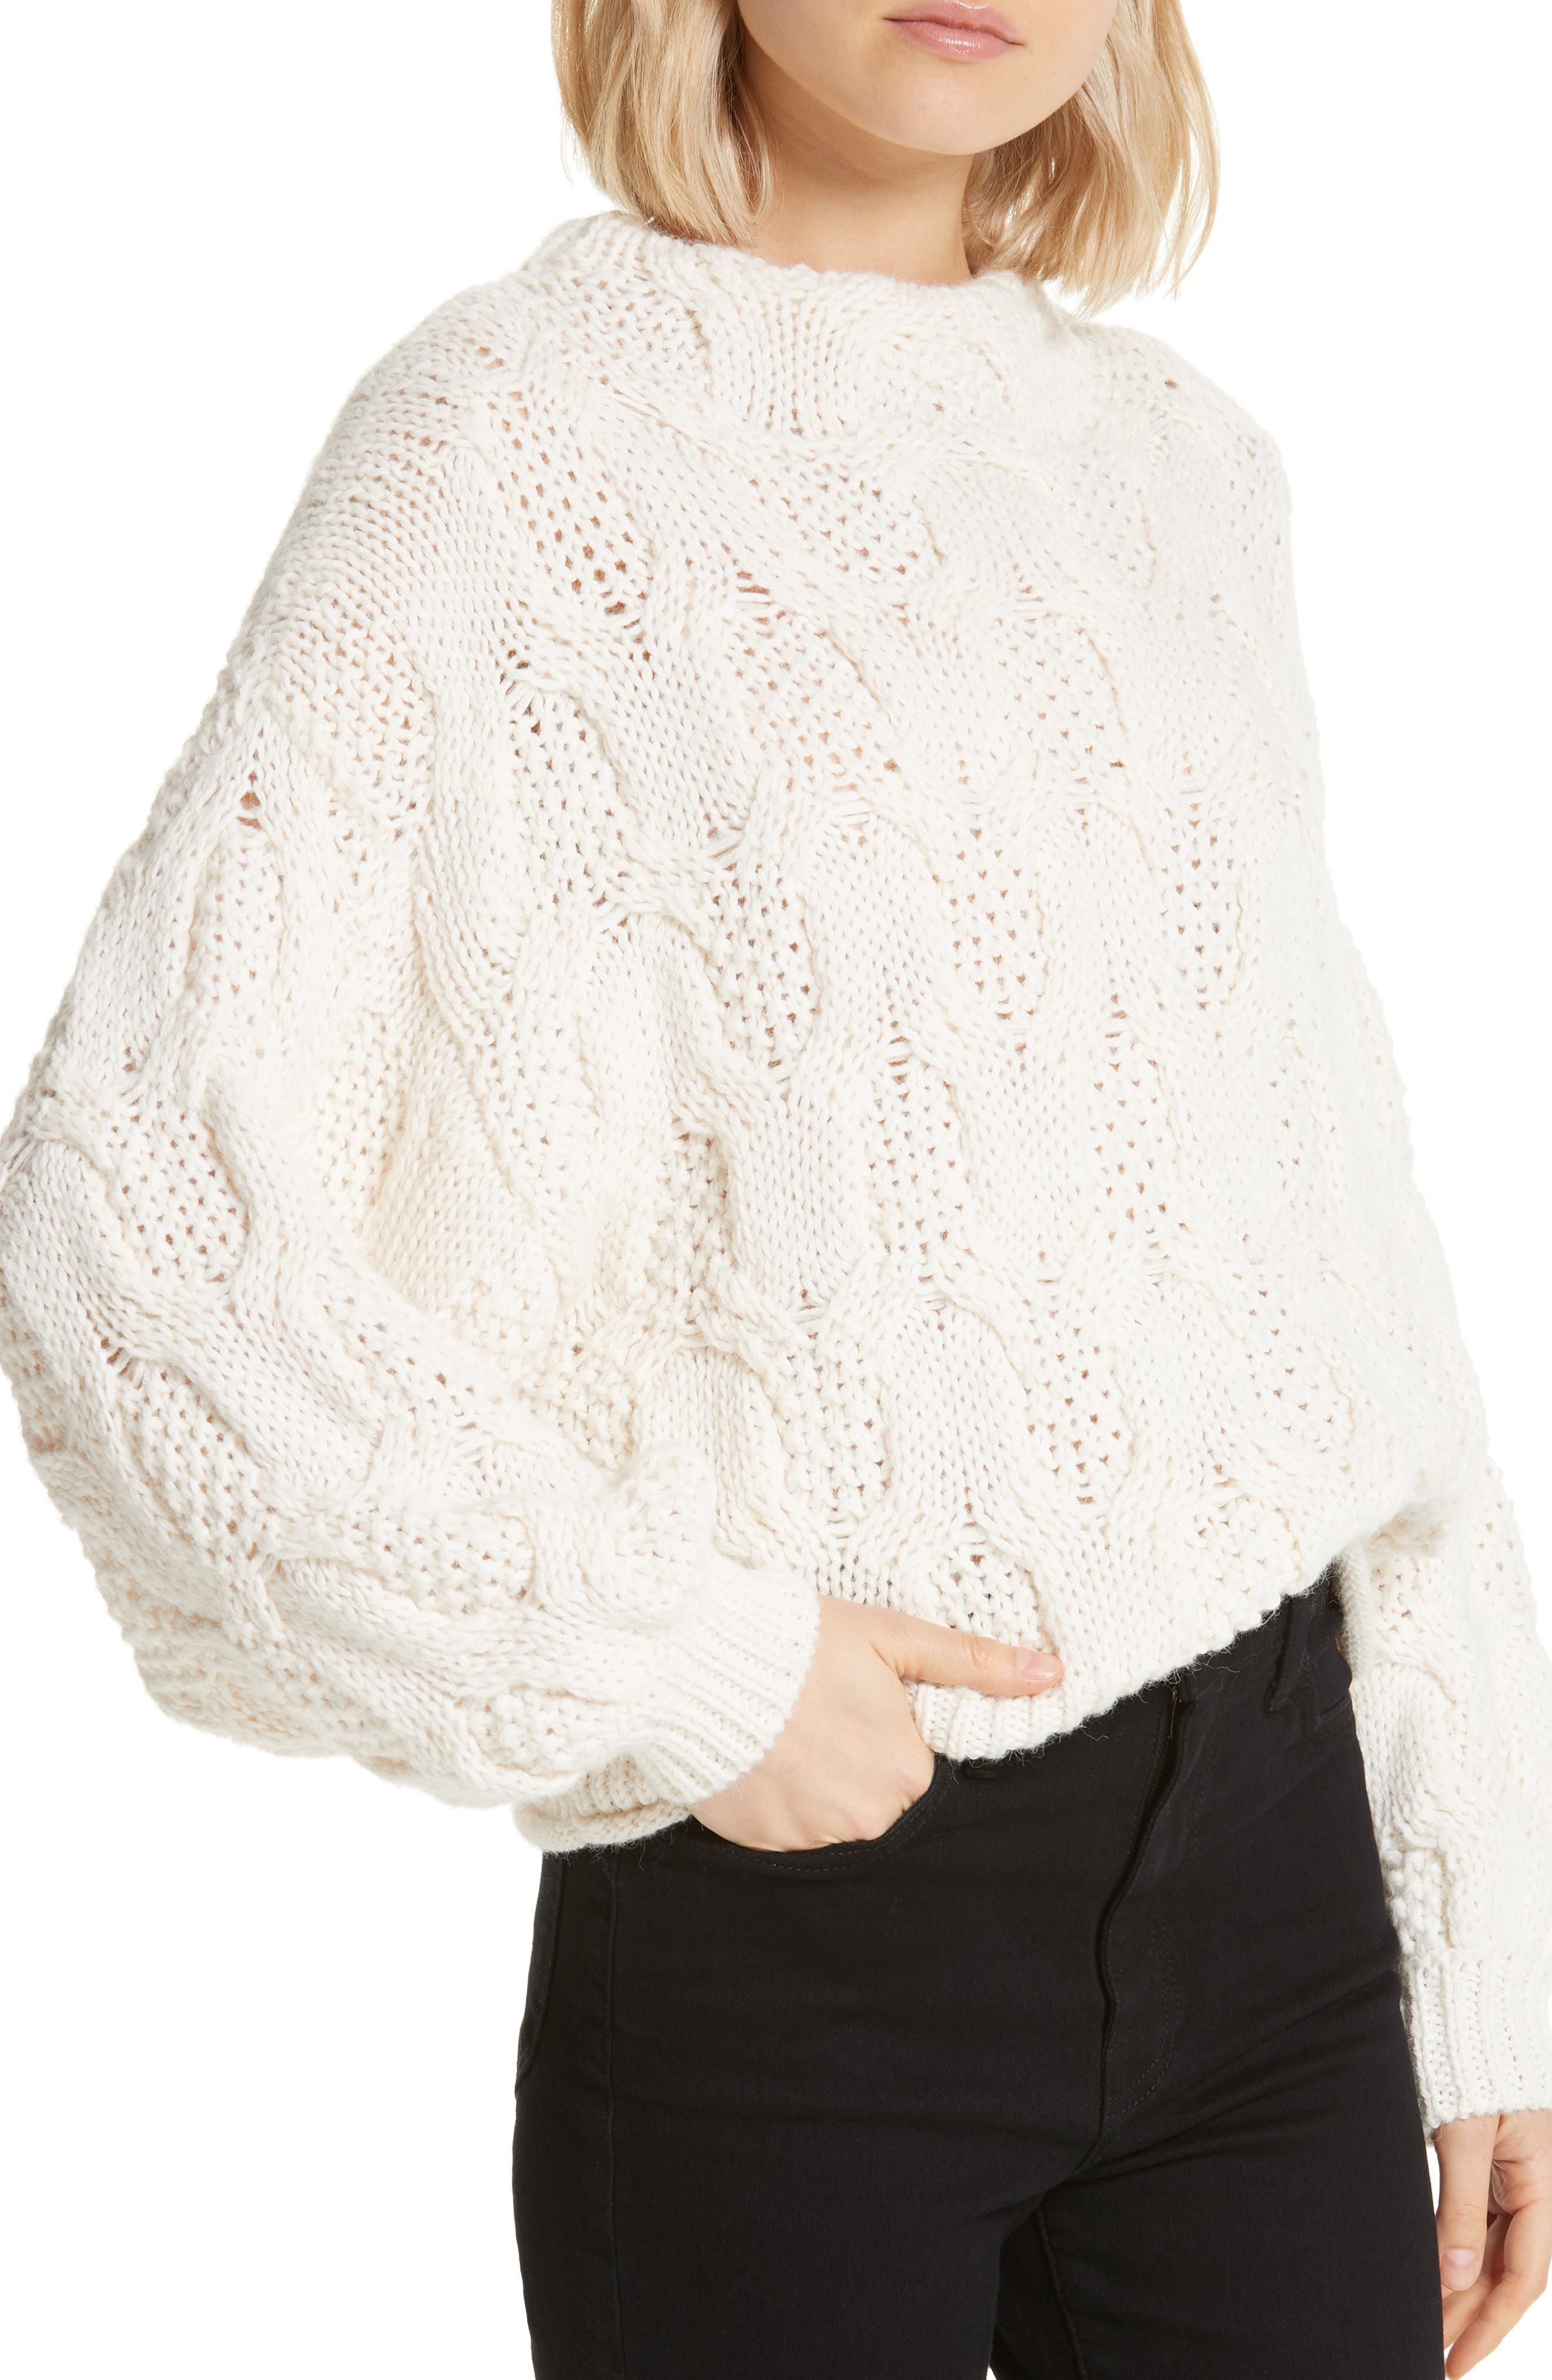 JOIE,                             Cable Knit Alpaca Wool Blend Sweater,                             Alternate thumbnail 4, color,                             900